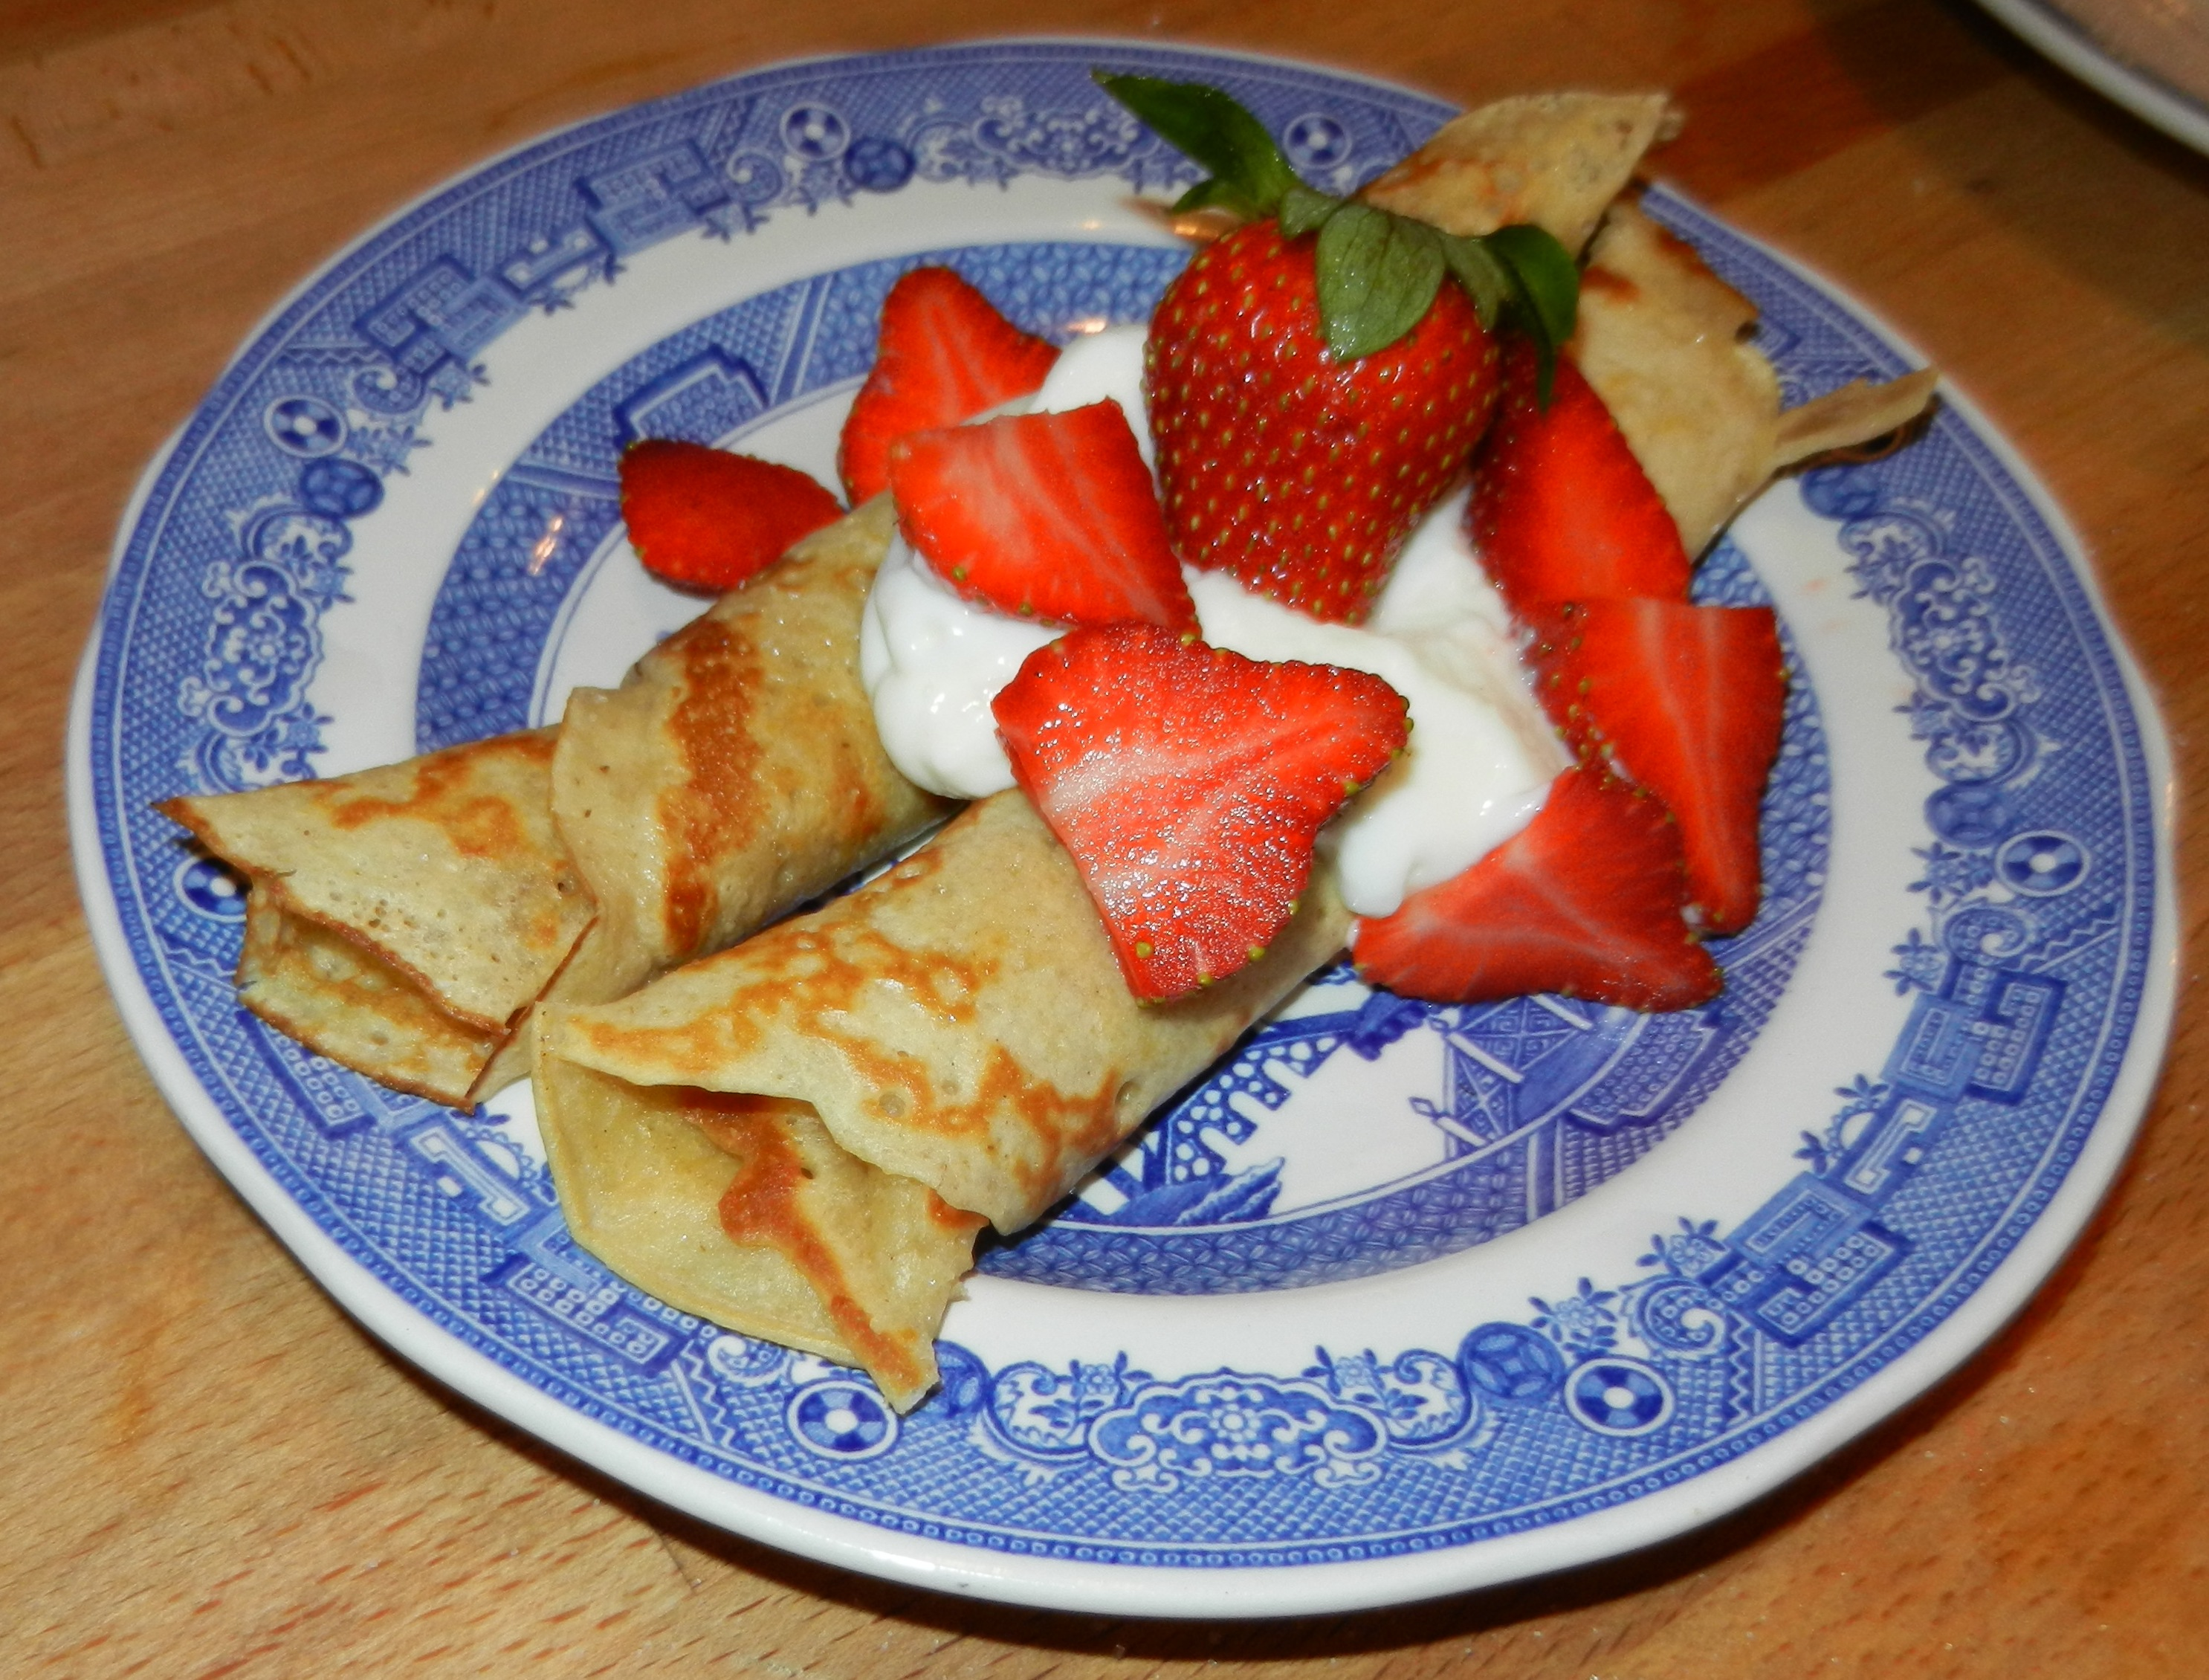 Chef Jessica S Healthy Crepes With Coconut Oil Coconut oil is a versatile oil that can benefit your overall health. coconut oil cooking